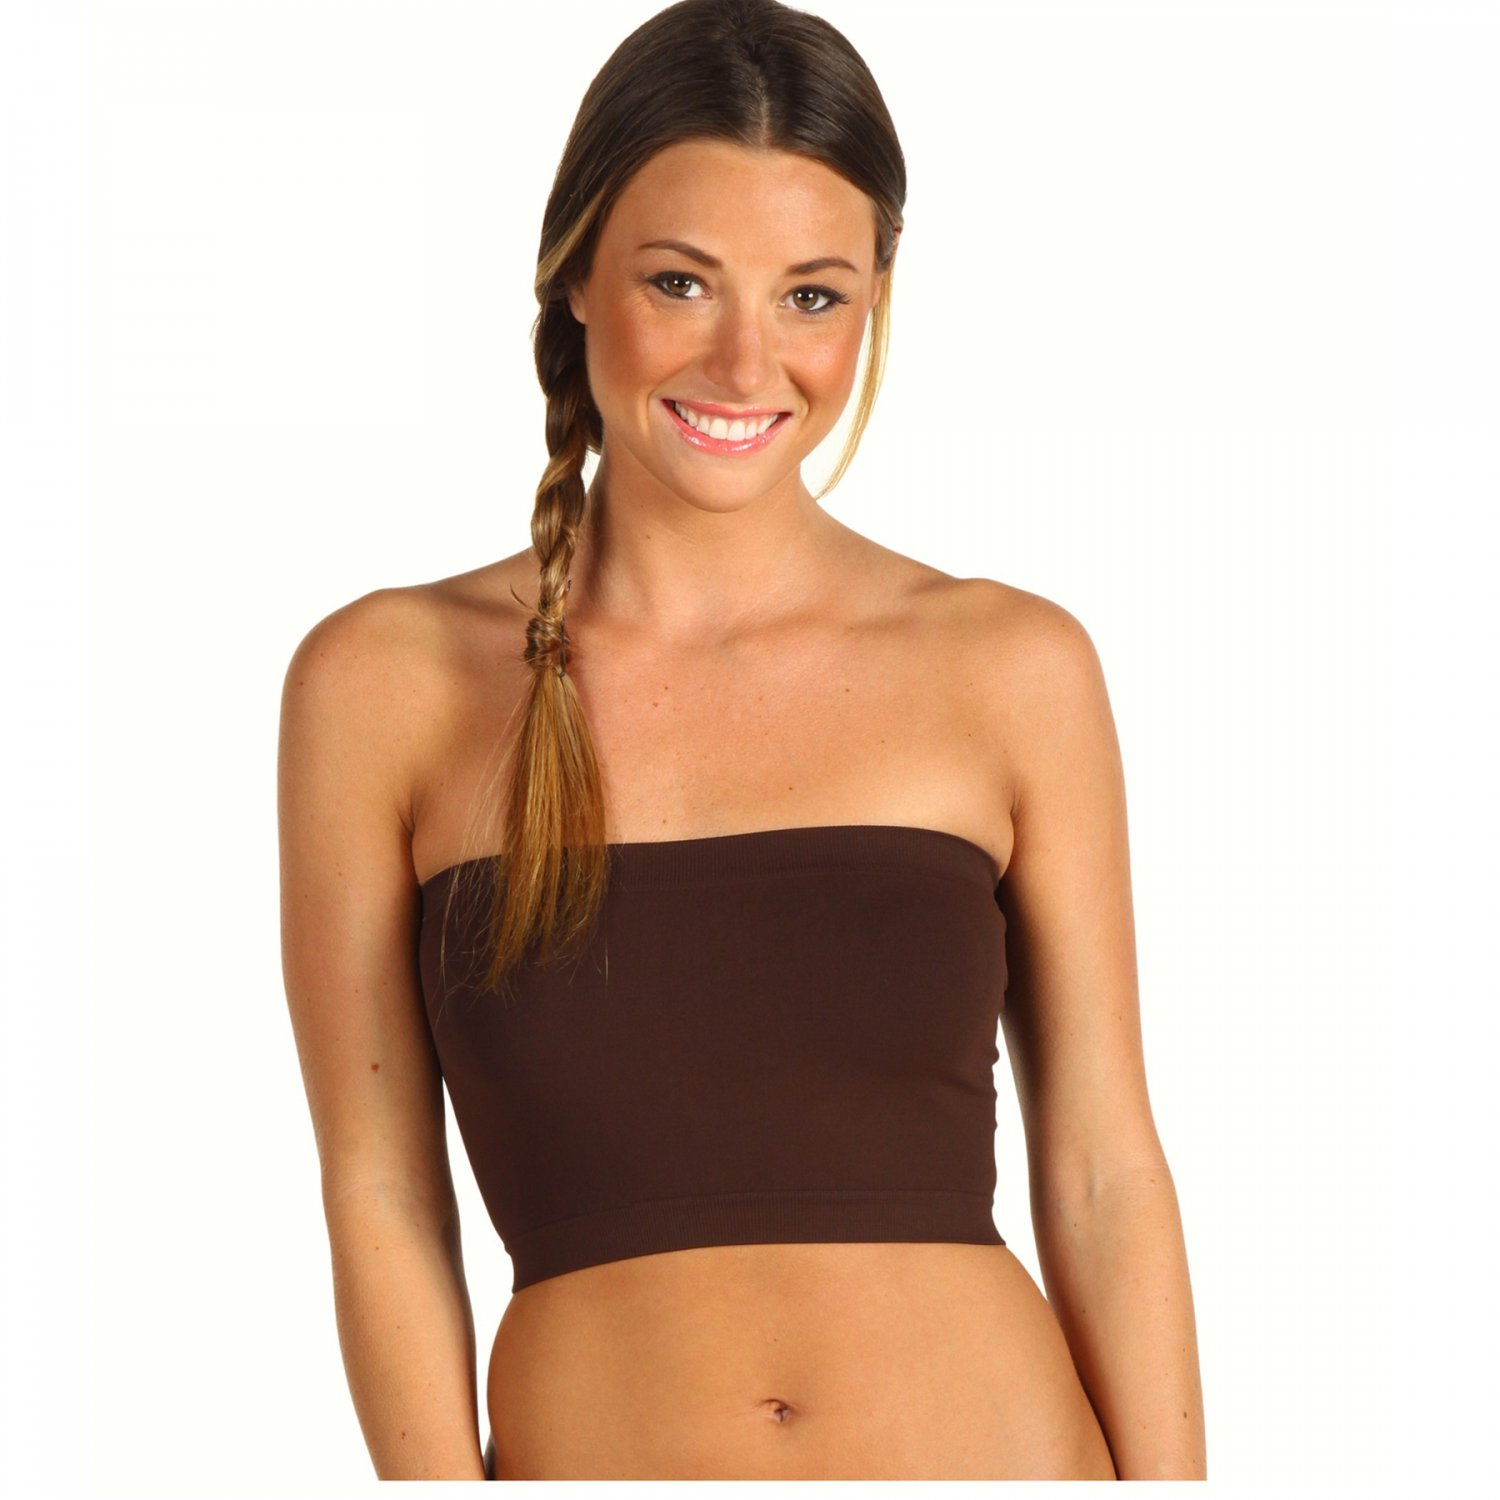 Women's Brown Strapless Sports Bra Bandeau Tube Top new